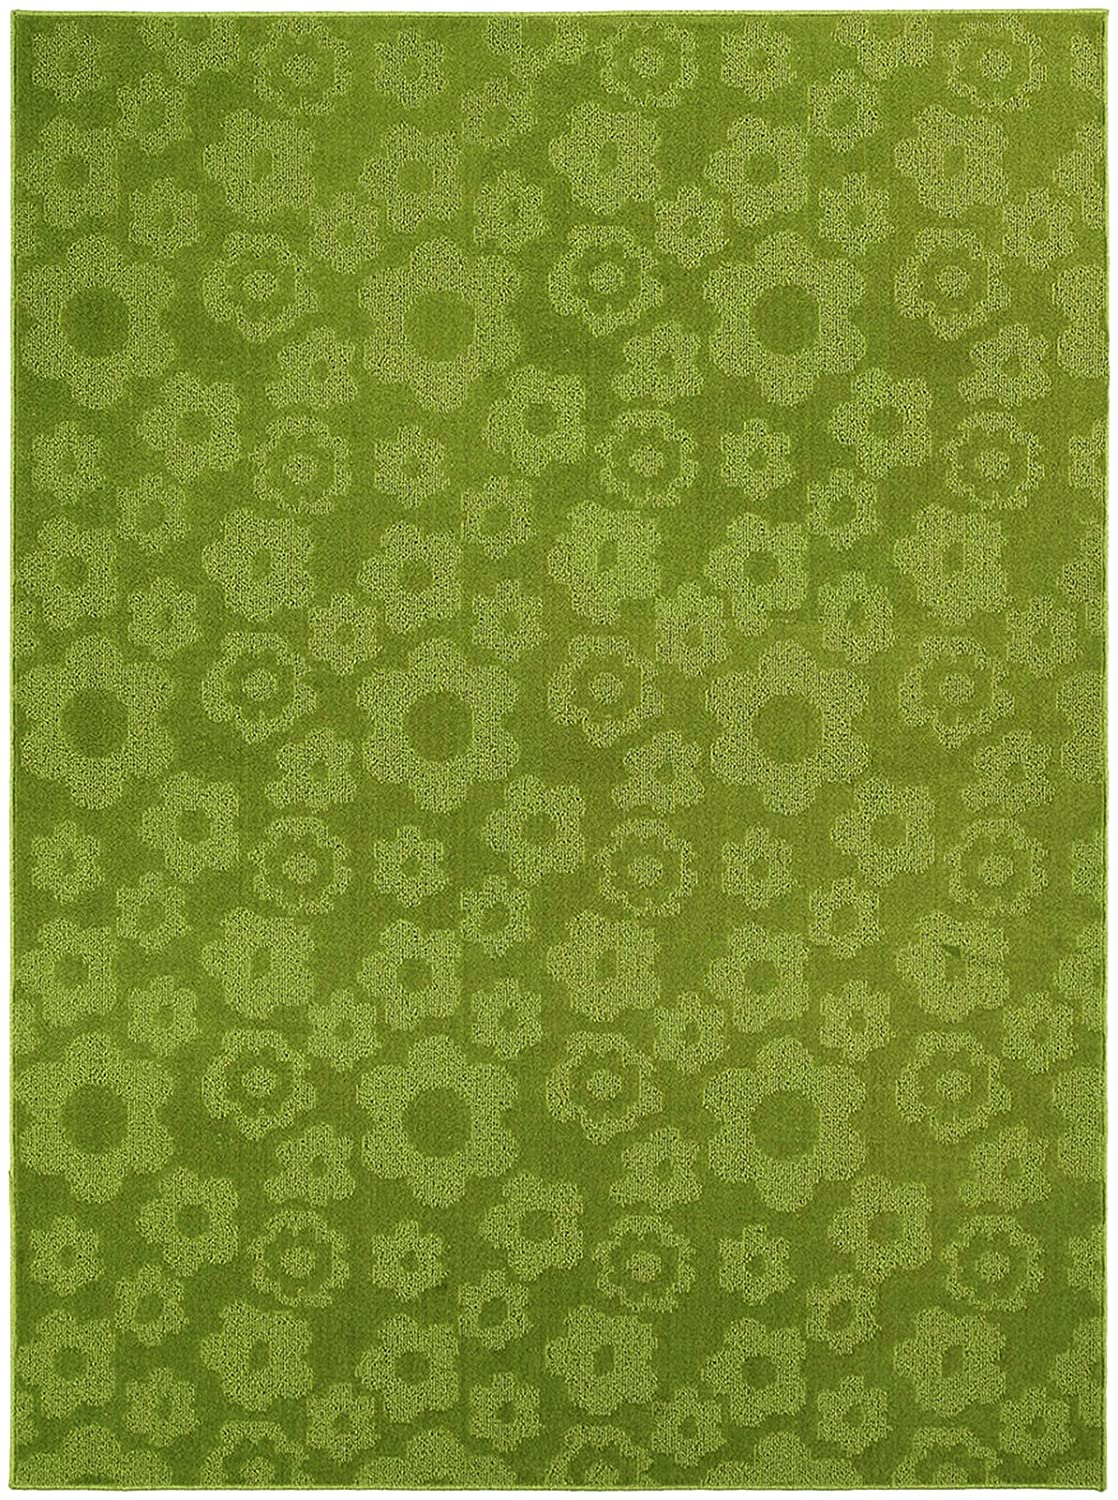 Amazon Com Garland Rug Flowers Area Rug 5 Feet By 7 Feet Lime Kitchen Dining